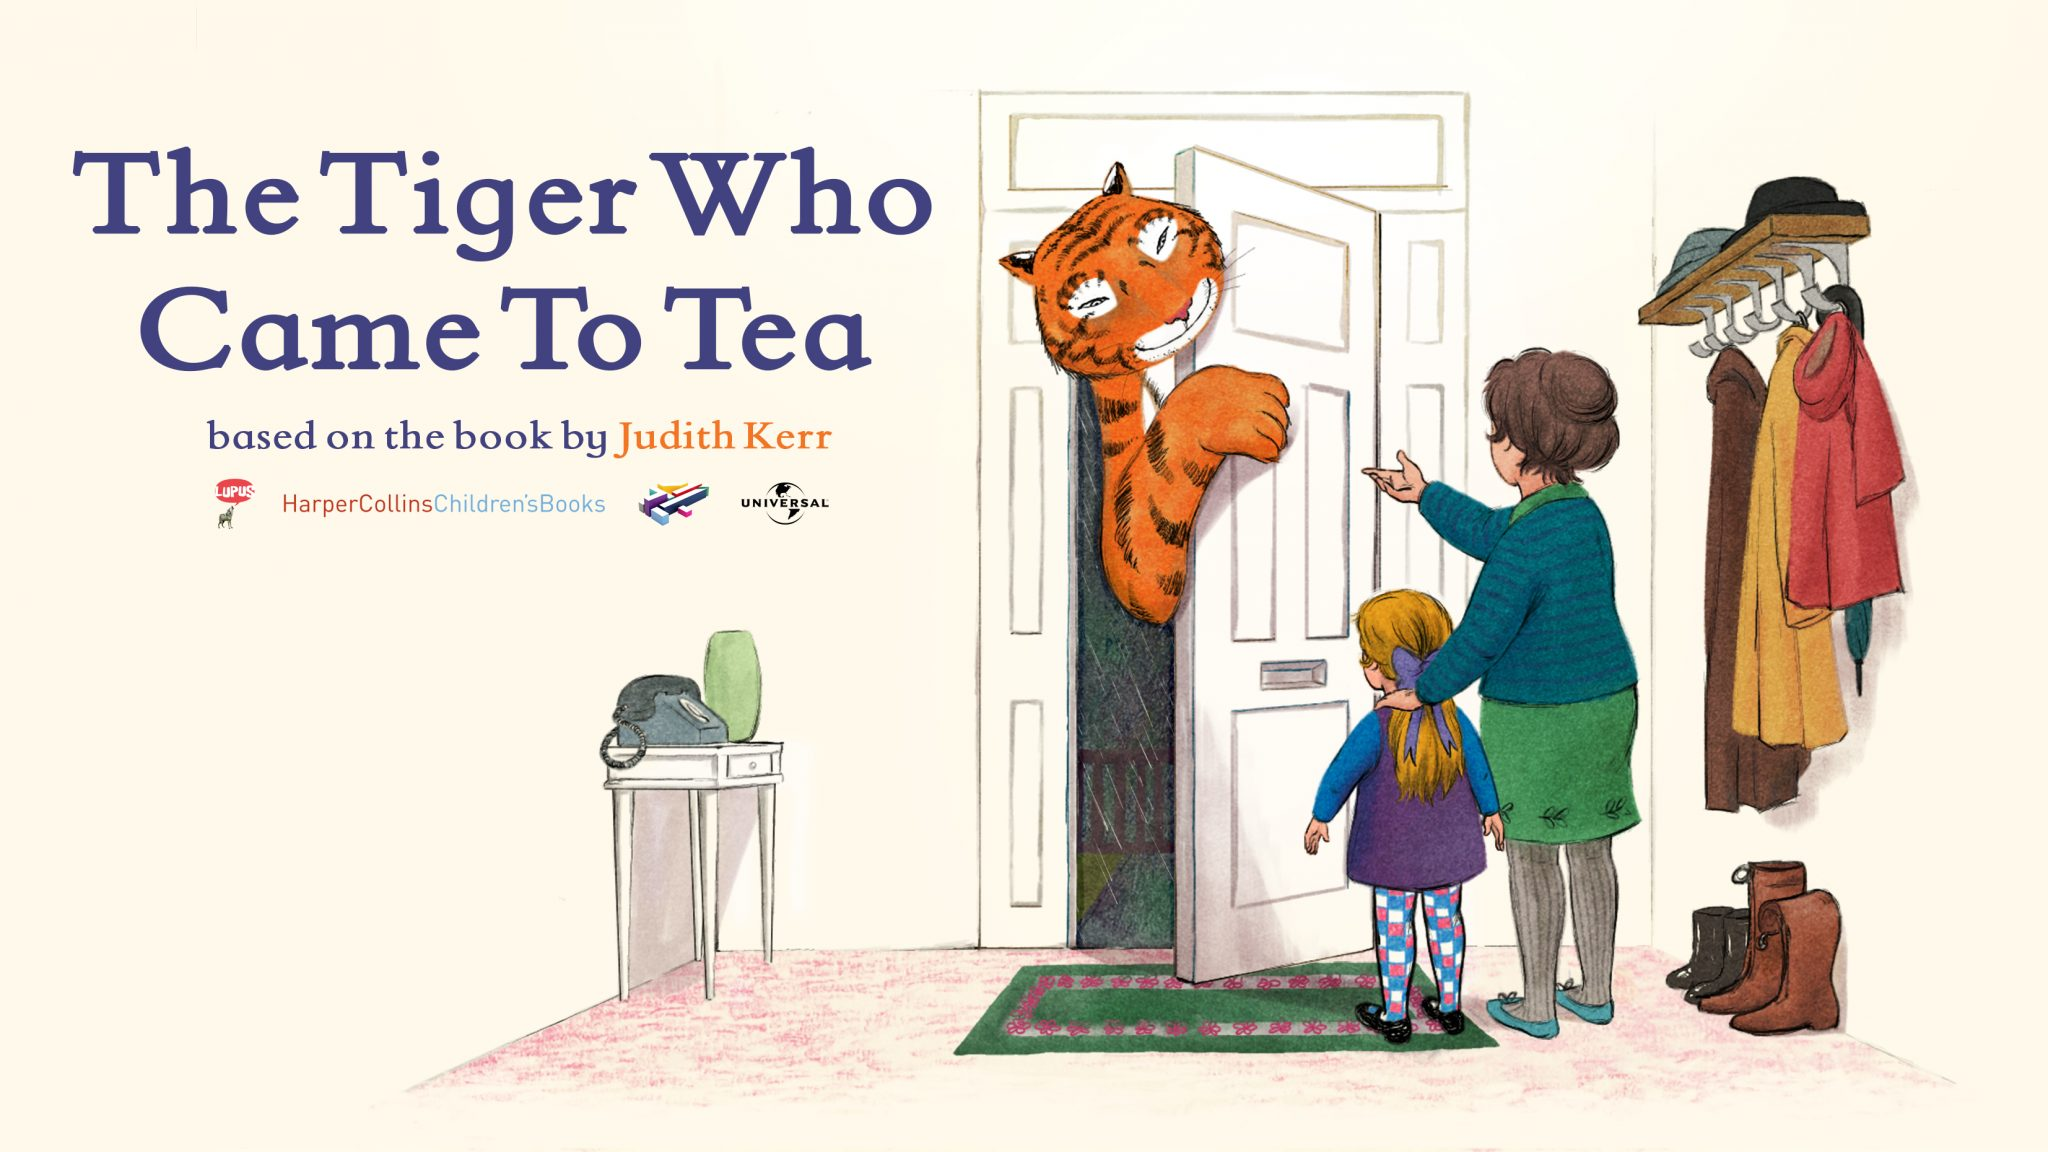 The Tiger Who Came to Tea promotional image, courtesy of Lupus Films